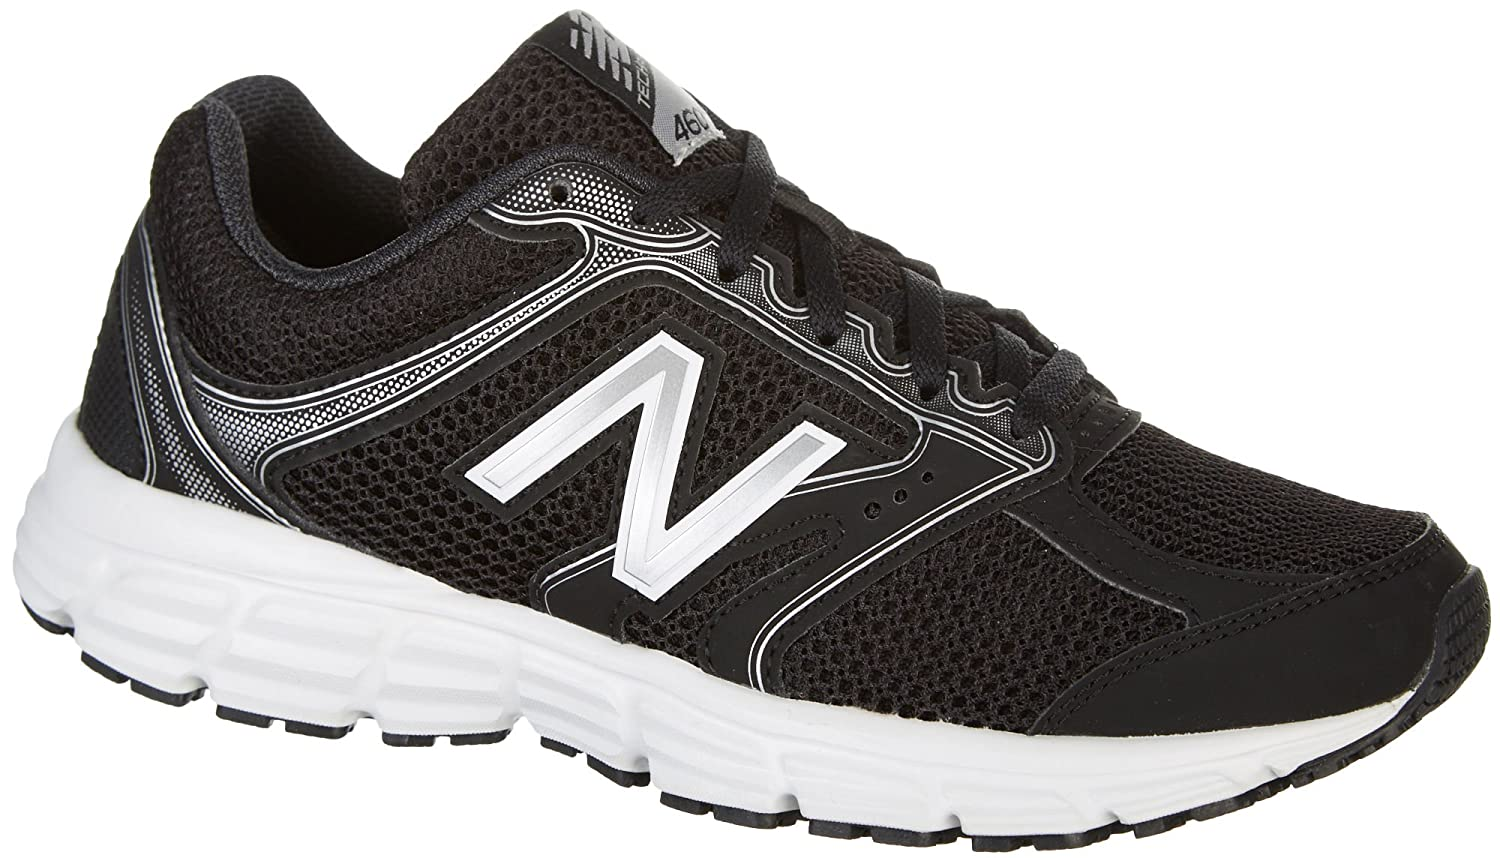 New Balance Women's 460v2 Cushioning B01MU4CMVA 10 B(M) US|Black